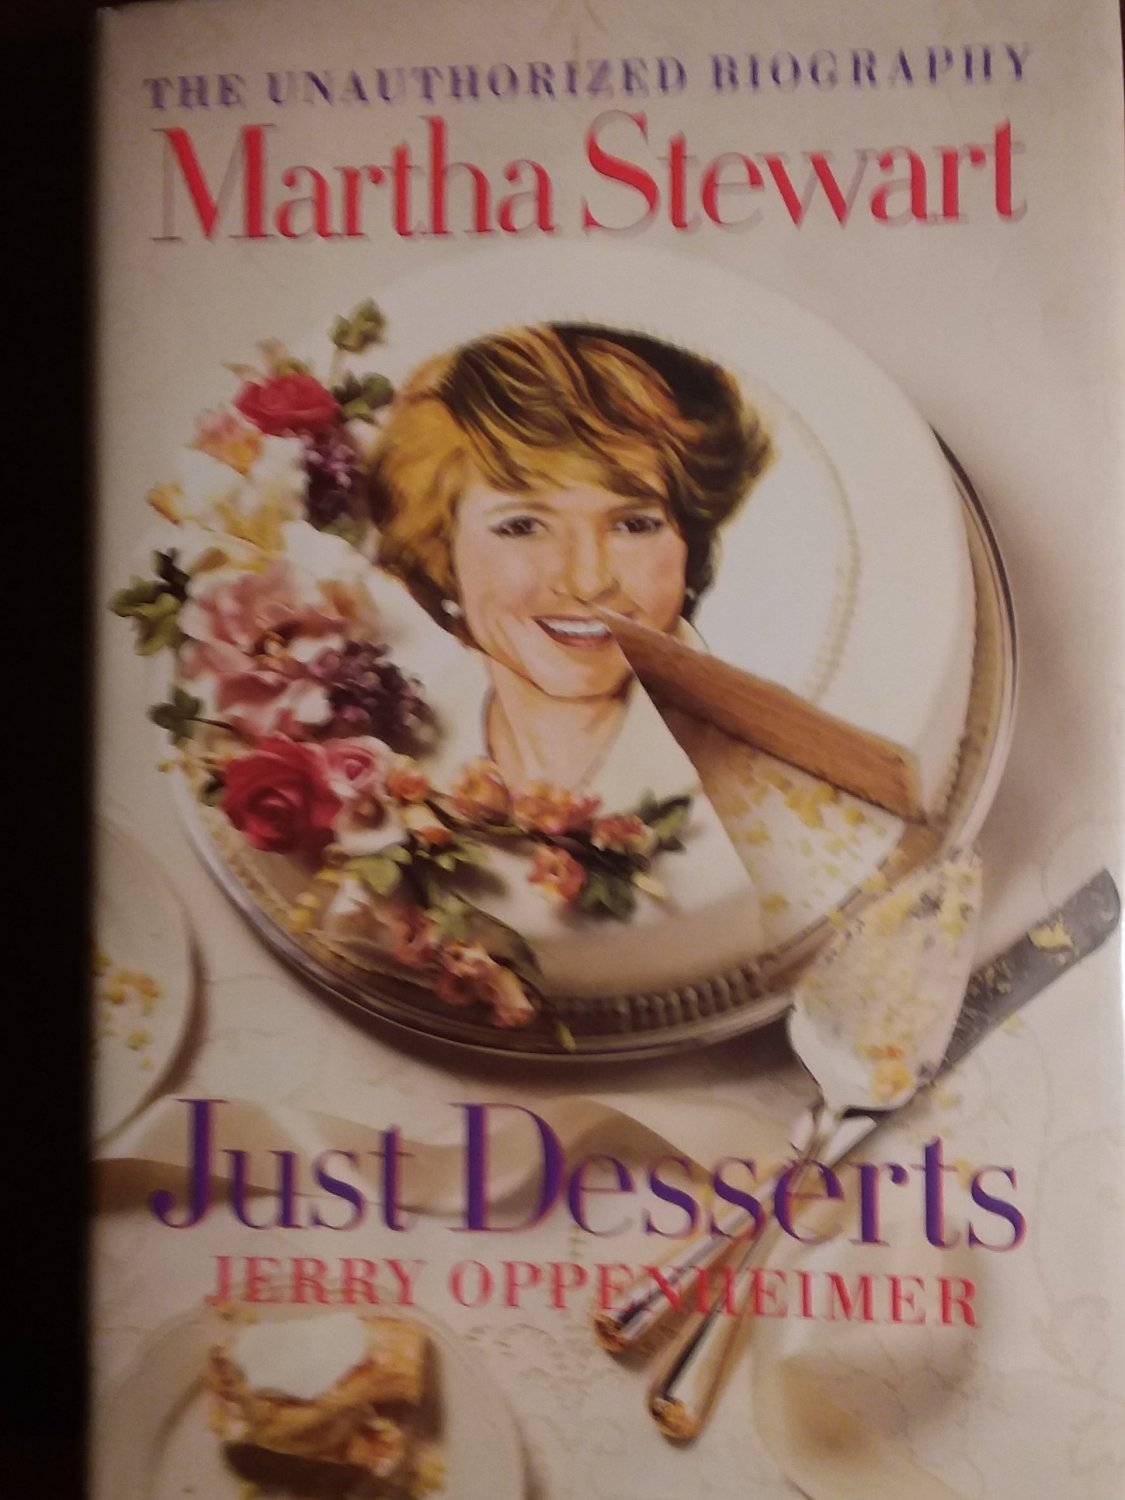 The Unauthorized Biography Martha Stewart.  Just Desserts by Jerry Oppenheimer.